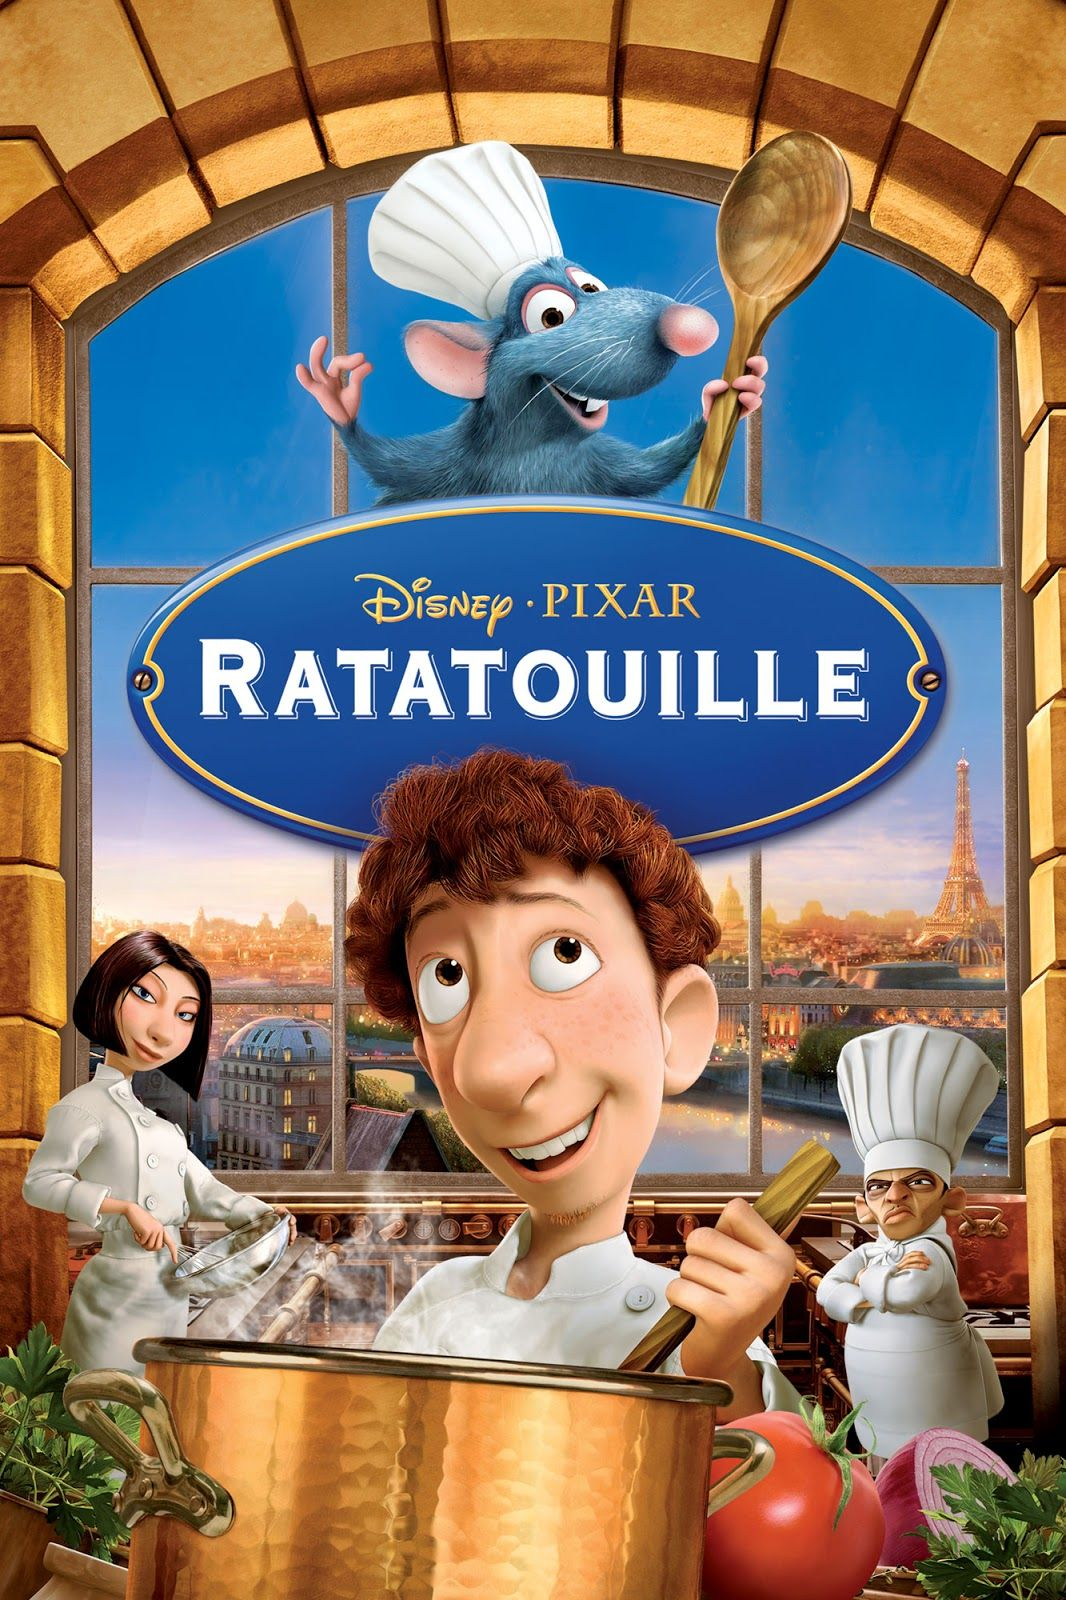 Ratatouille Desene Animate Online Dublate Si Subtitrate In Limba Romana Hd Disney Noi Ratatouille Movie Animated Movies Ratatouille Disney